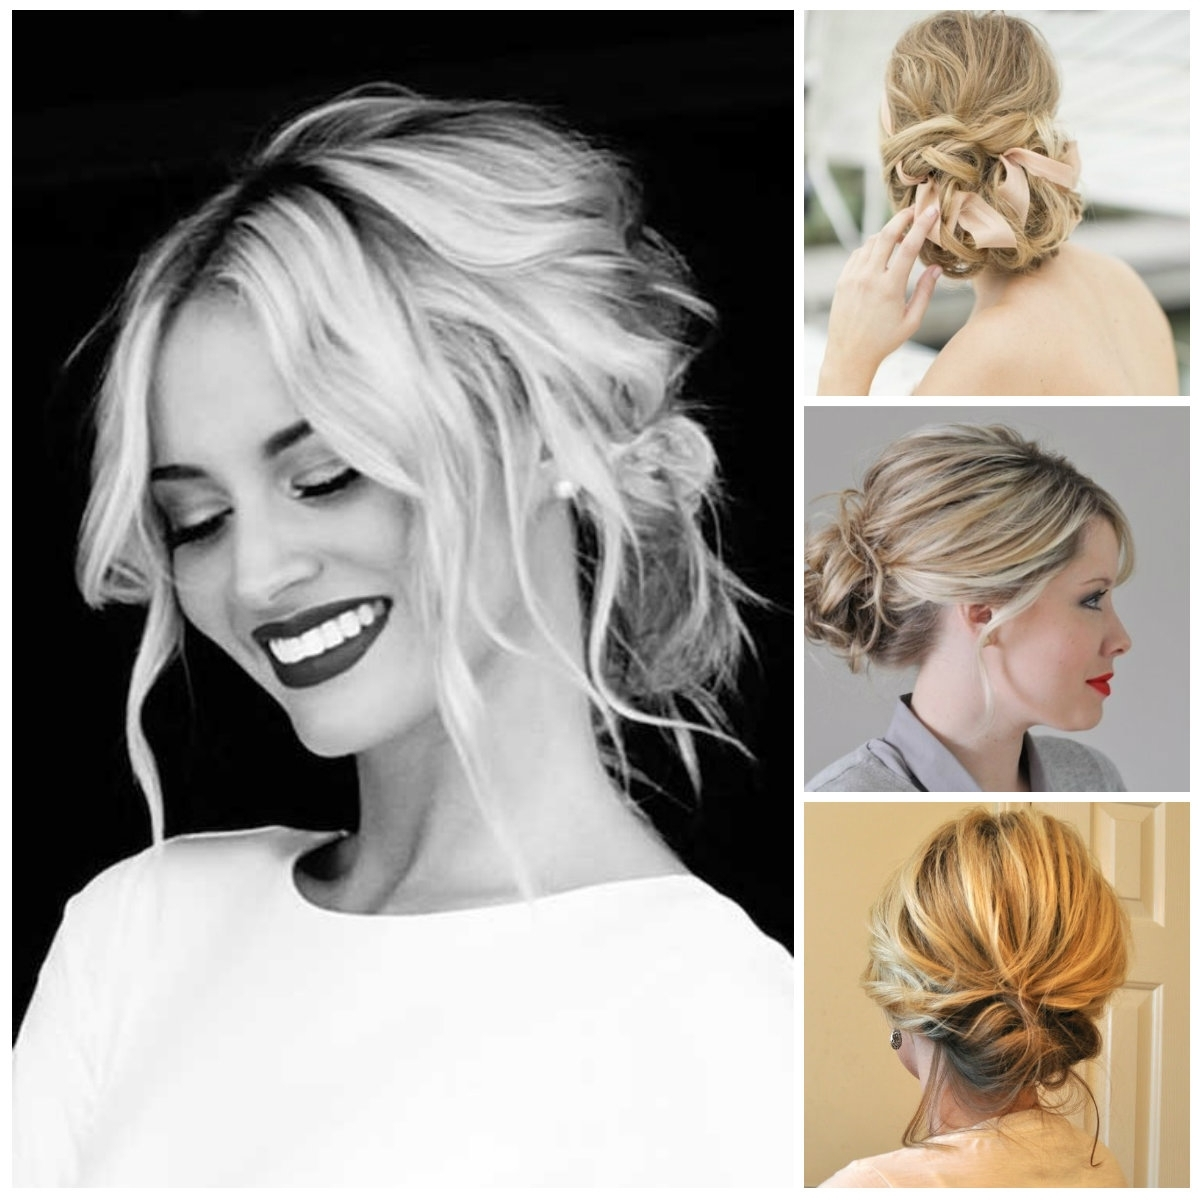 Famous Wedding Hairstyles For Fine Hair Long Length Intended For Updo Hairstyles For Medium Length – Hairstyle For Women & Man (View 6 of 15)